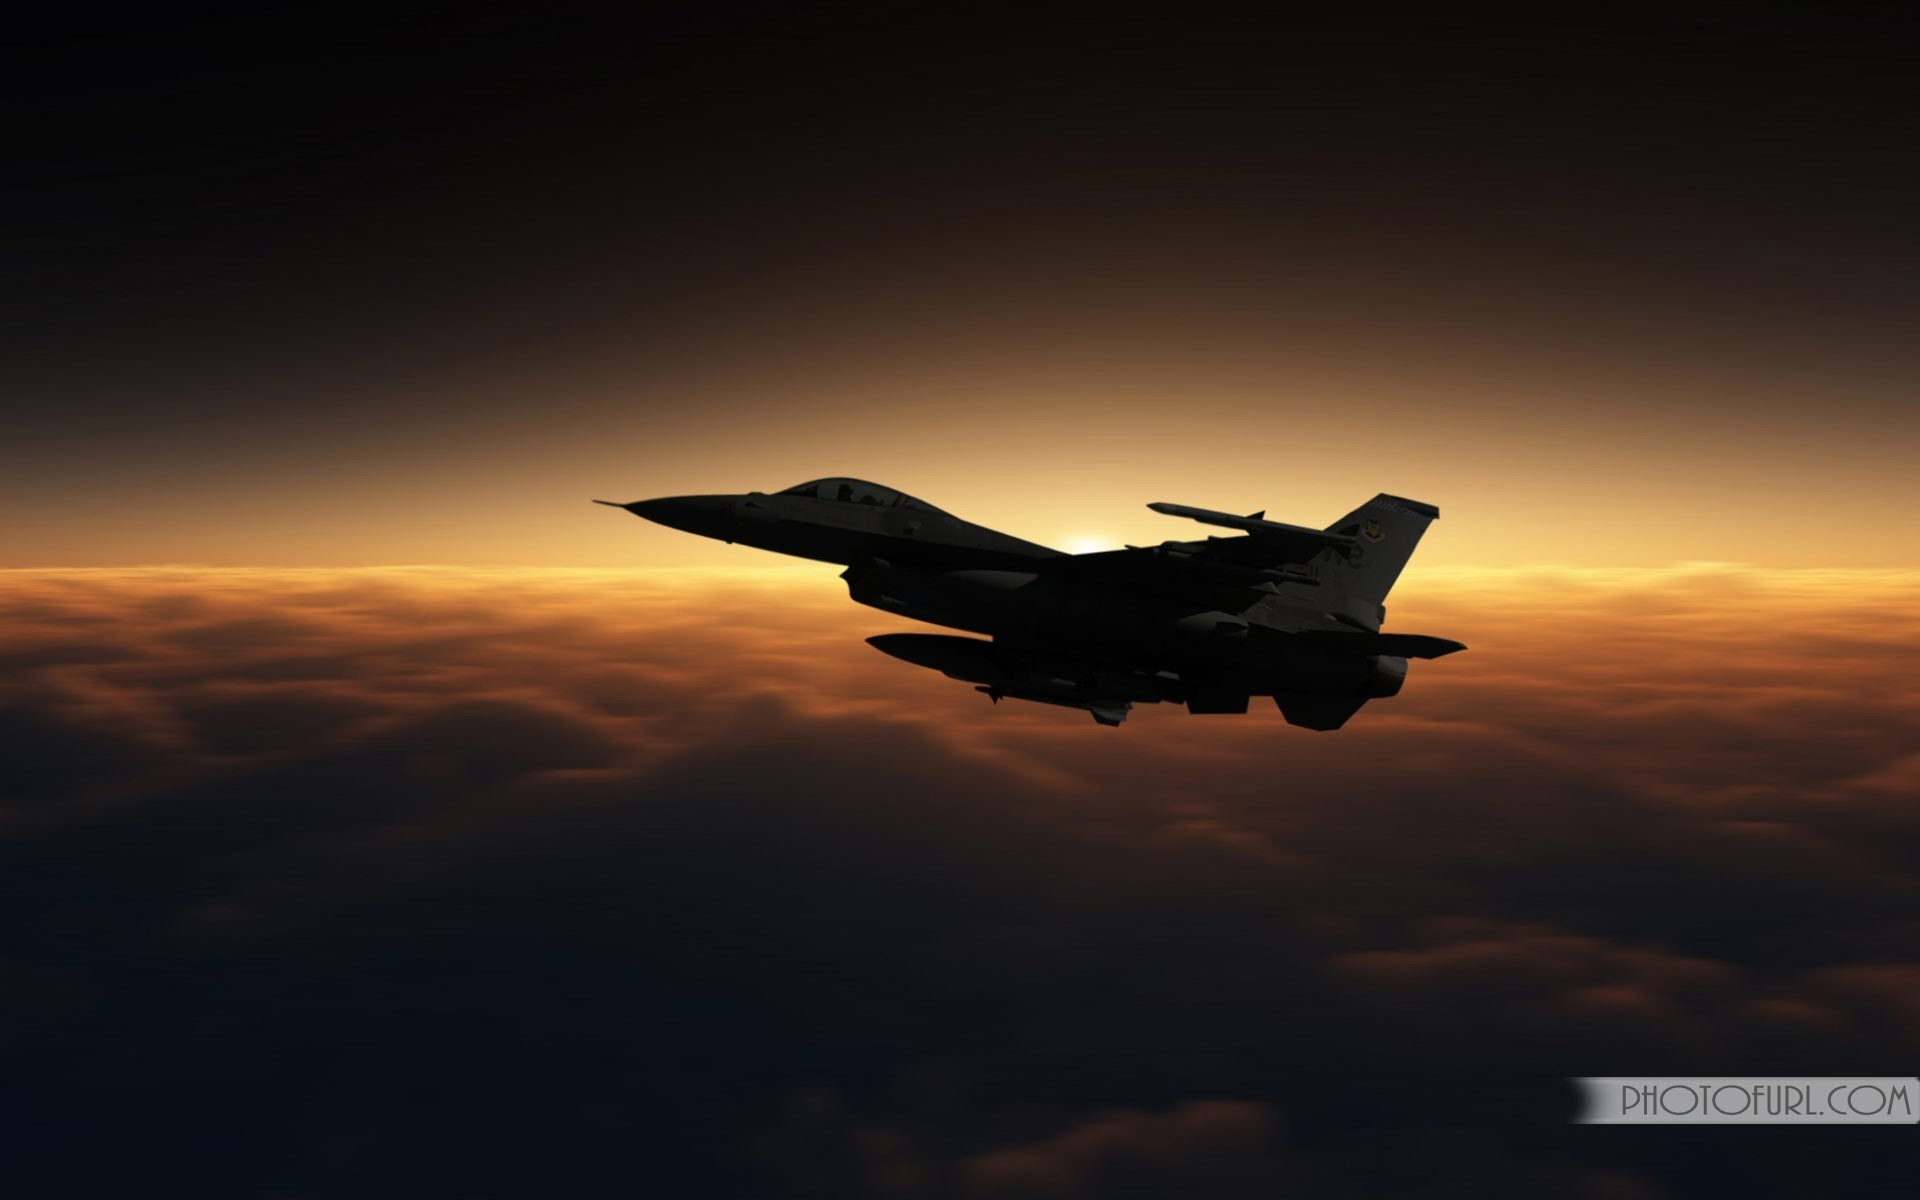 1920x1200  Jet Fighter HD 590624 · Download · Wallpaper 662121